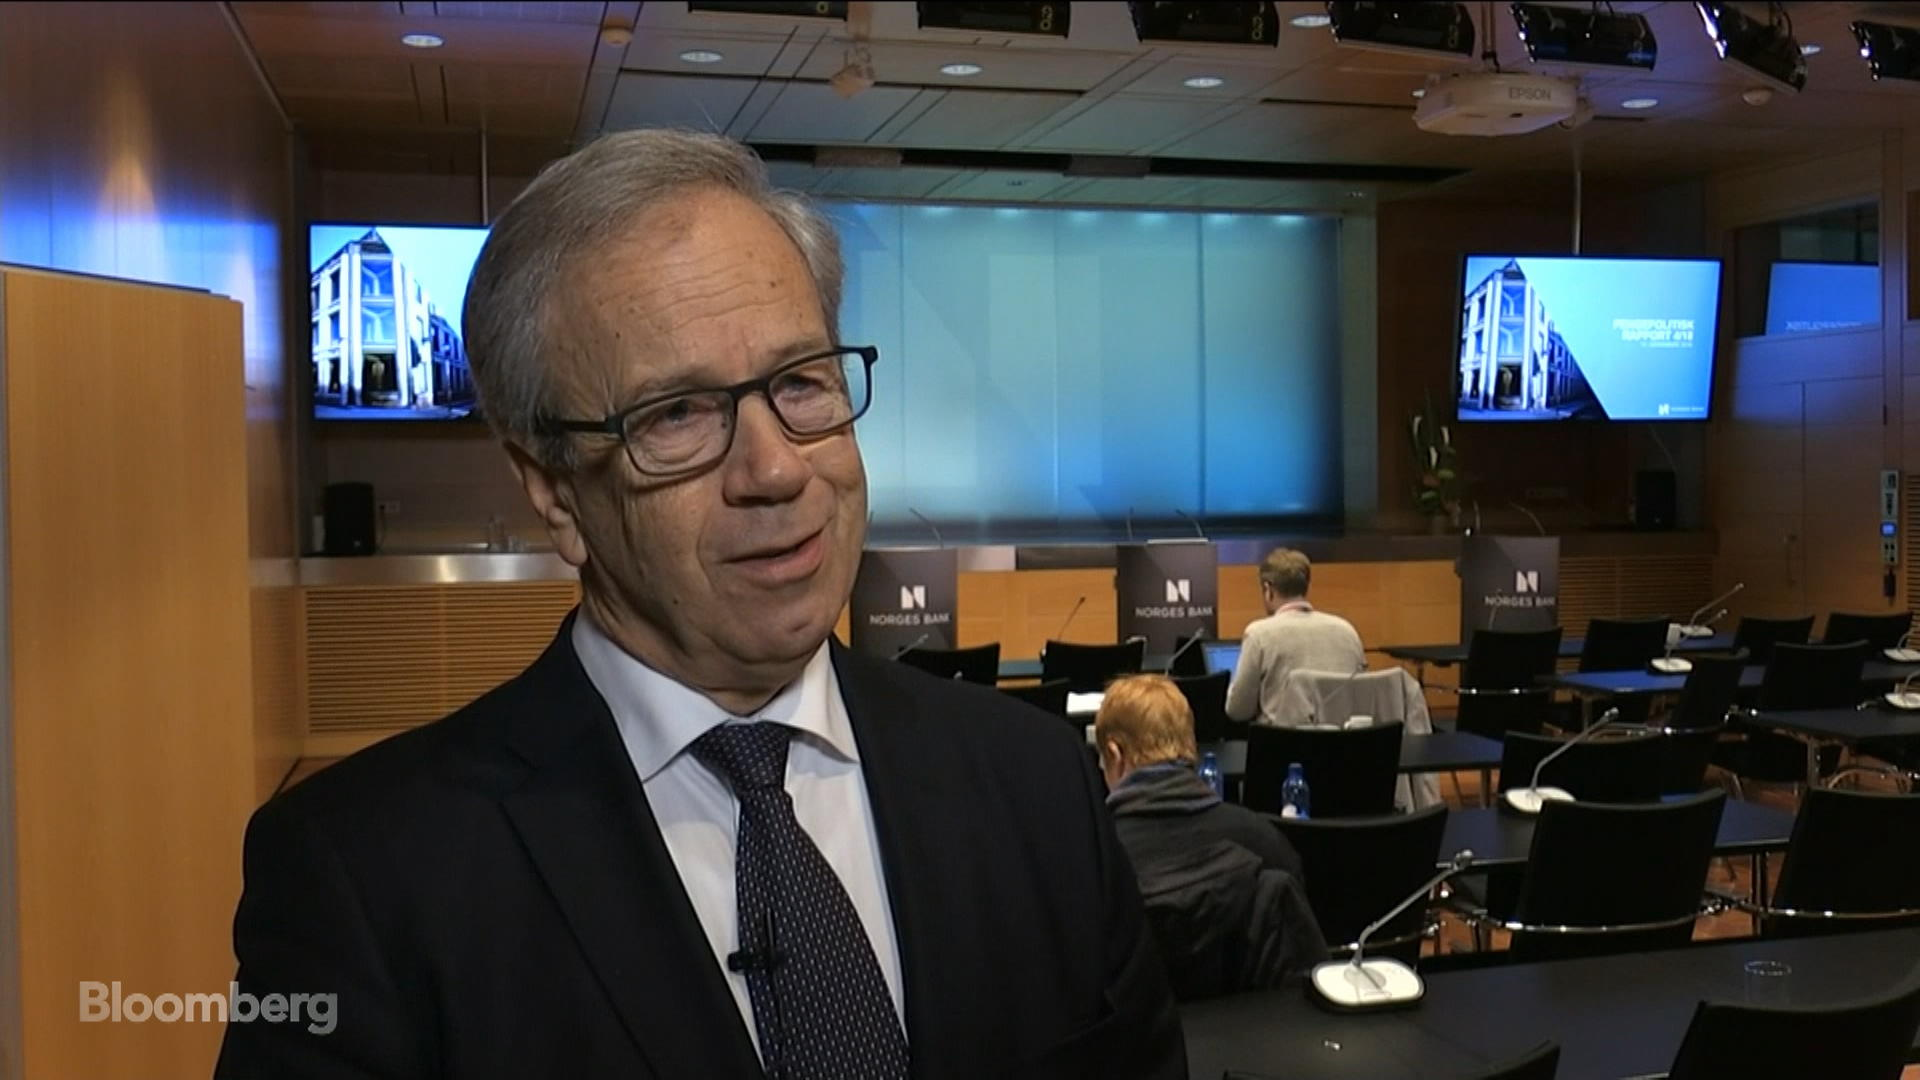 Norges Bank Governor Says Next Rate Hike 'Most Likely' in March 2019